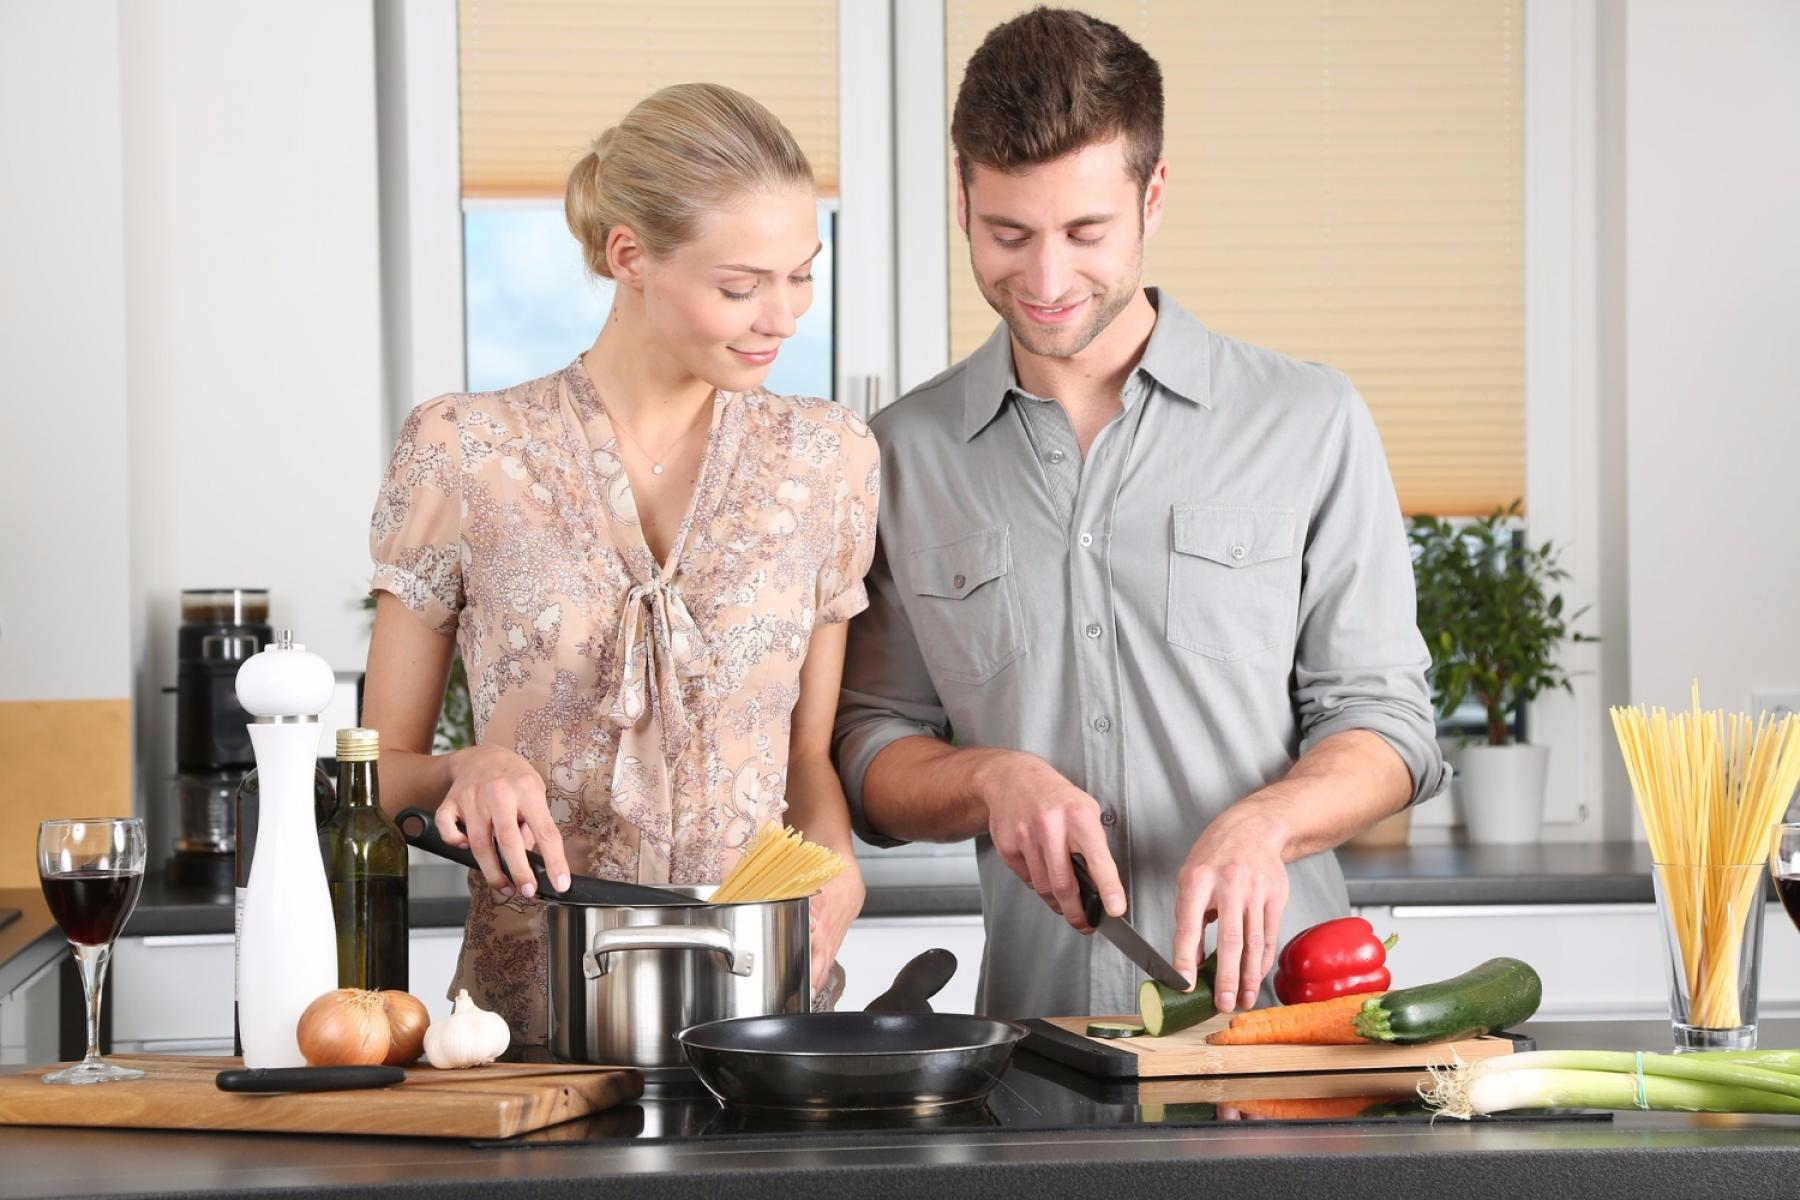 Cooking For Couples - Fast, Frugal, and Fun